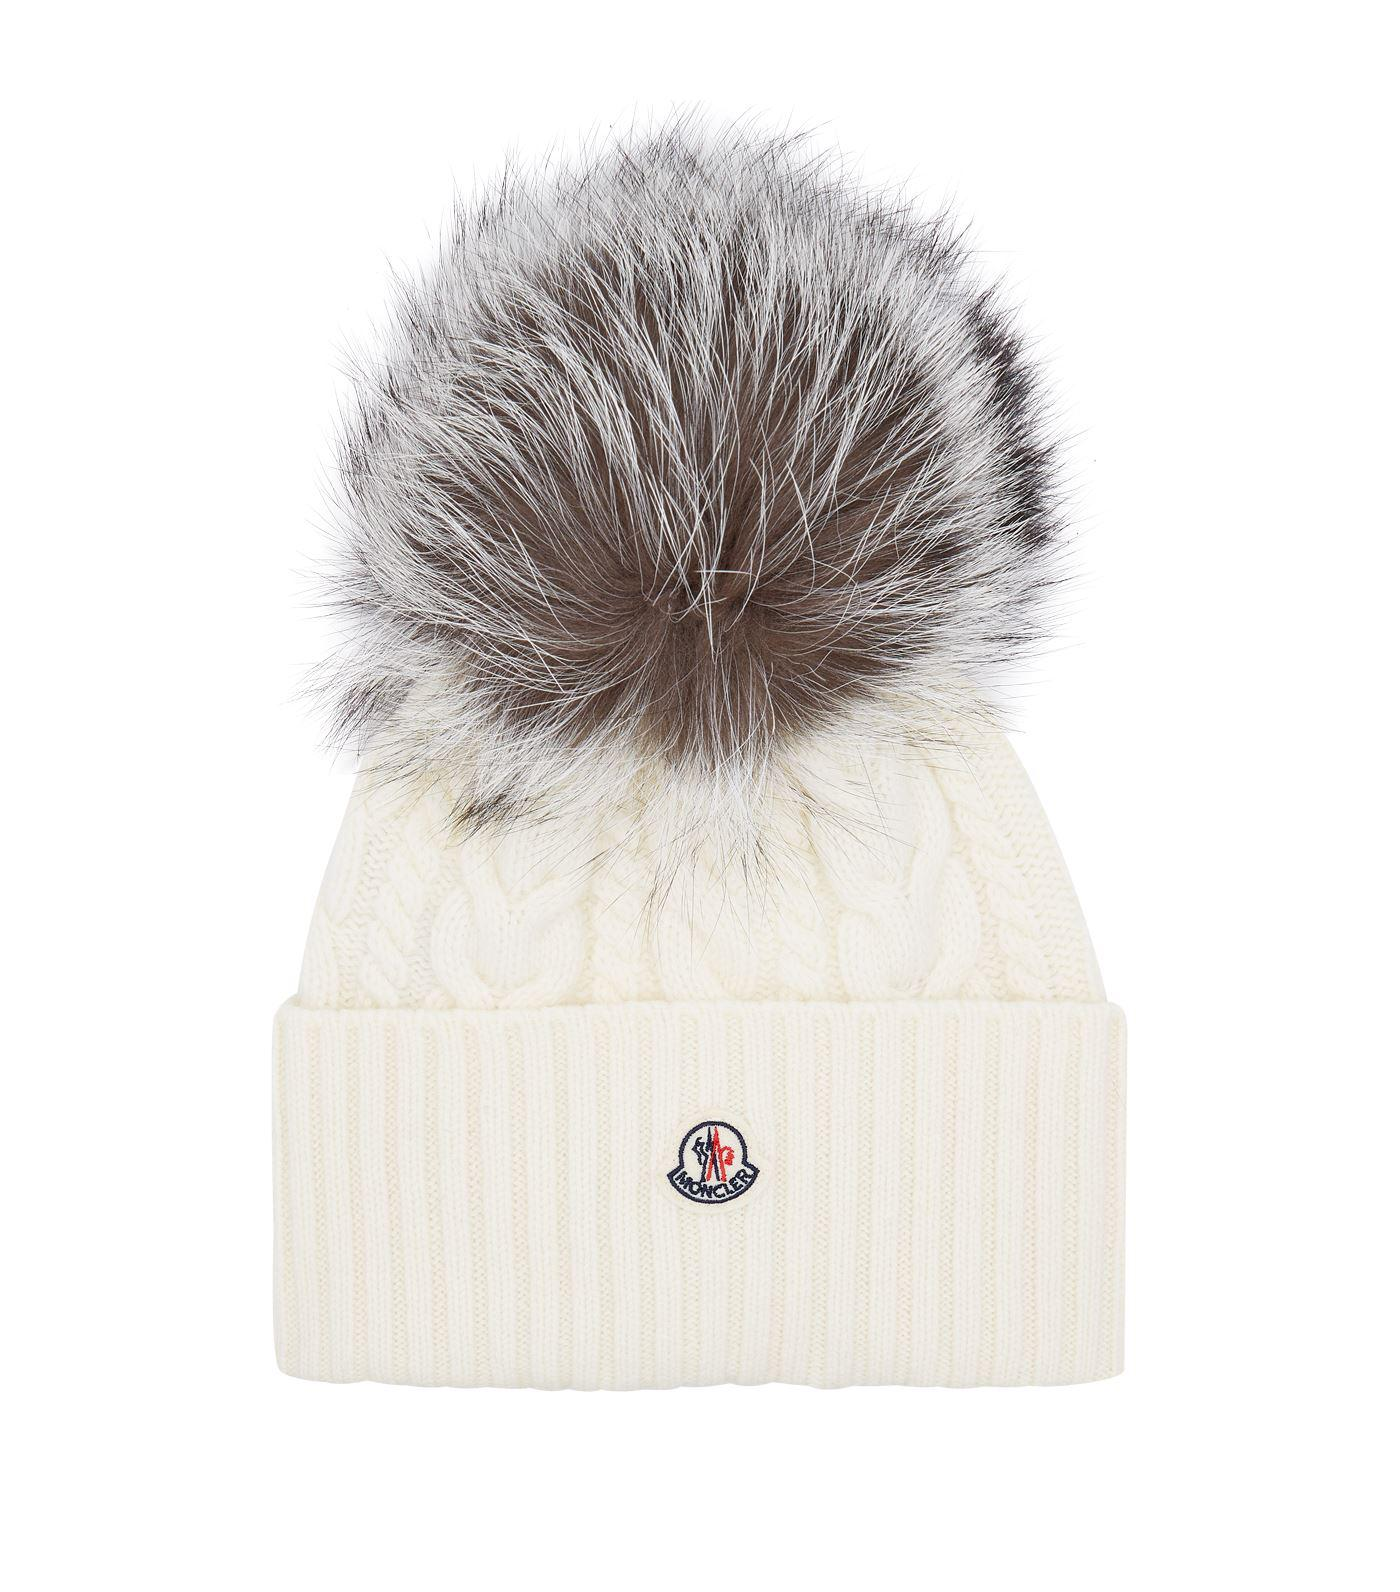 12914e60f146c Moncler - White Fox Fur Bobble Hat - Lyst. View fullscreen